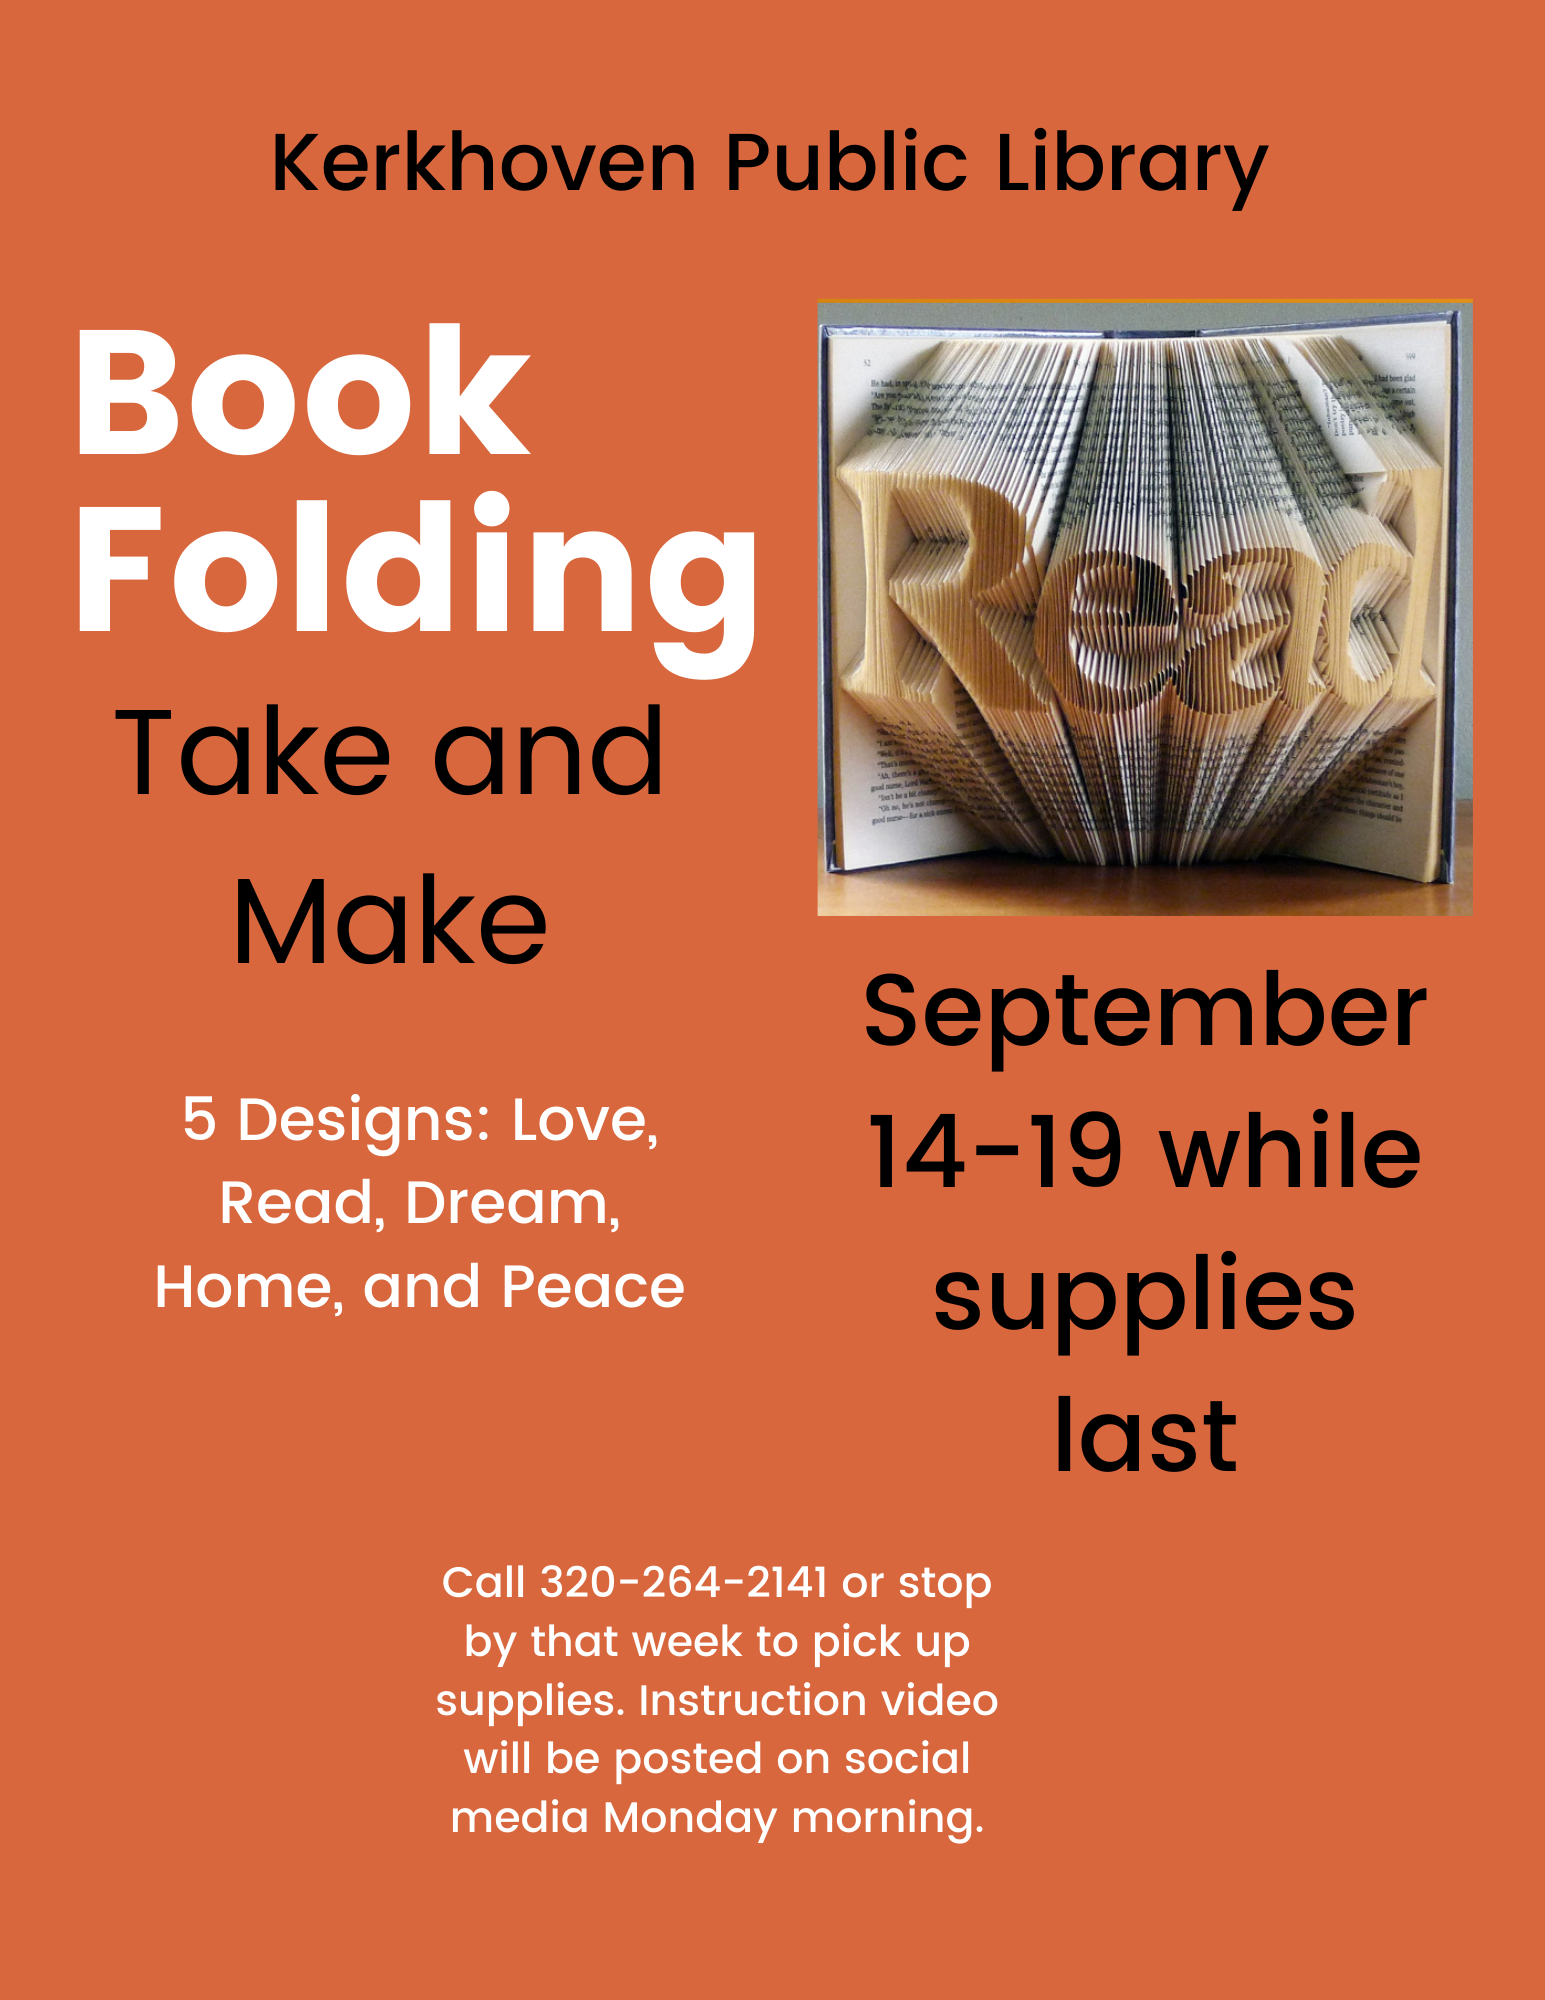 During the week of September 14-18, we will be offering Take and Make Book Folding. We have 5 different patterns to choose from: Love, Dream, Read, Home, and Peace. Instructional video will be posted on Facebook on Monday, September 14. Call 320-264-2141 to pick up your book!